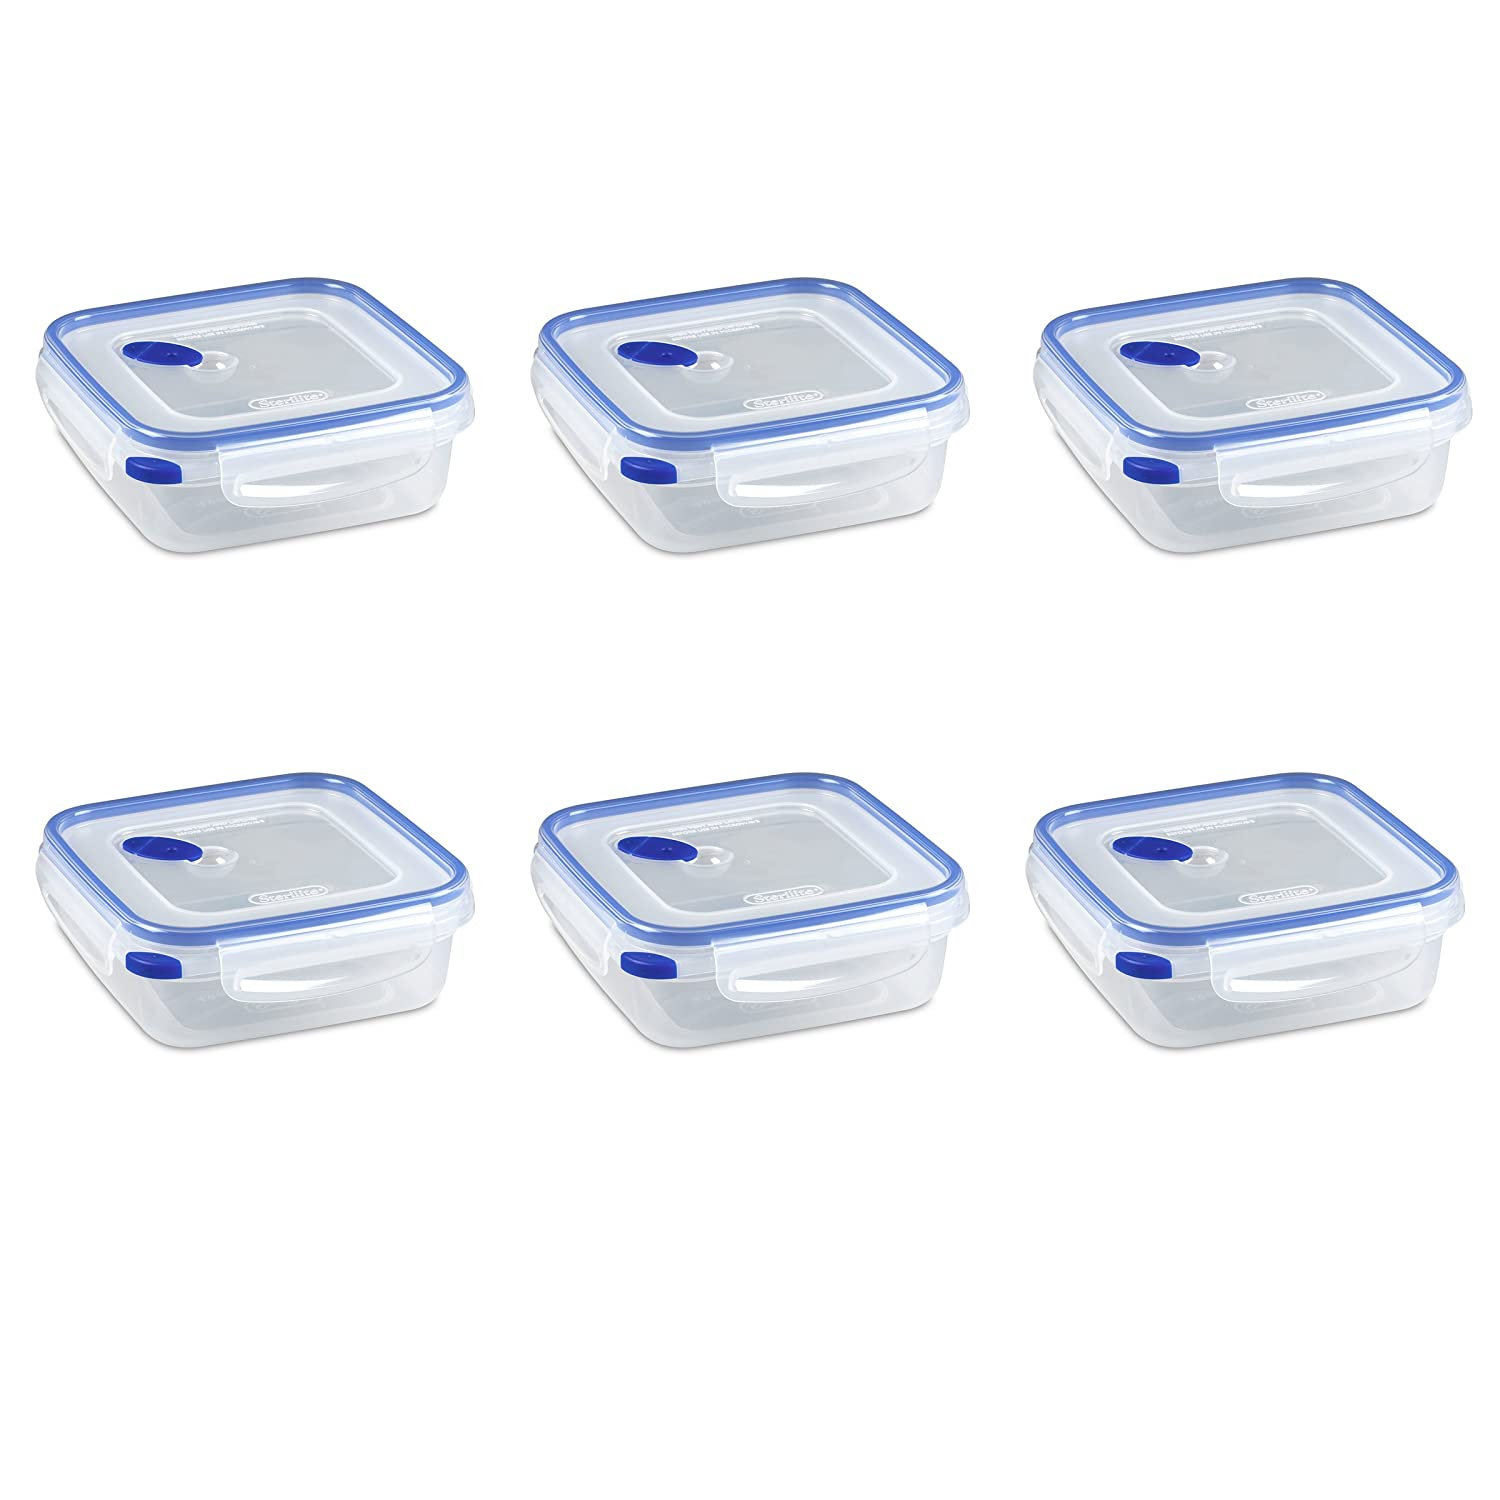 Sterilite 03314706 Ultra-Seal 4 Cup Food Storage Container, See-Through Lid & Base with Blue Accents, 6-Pack